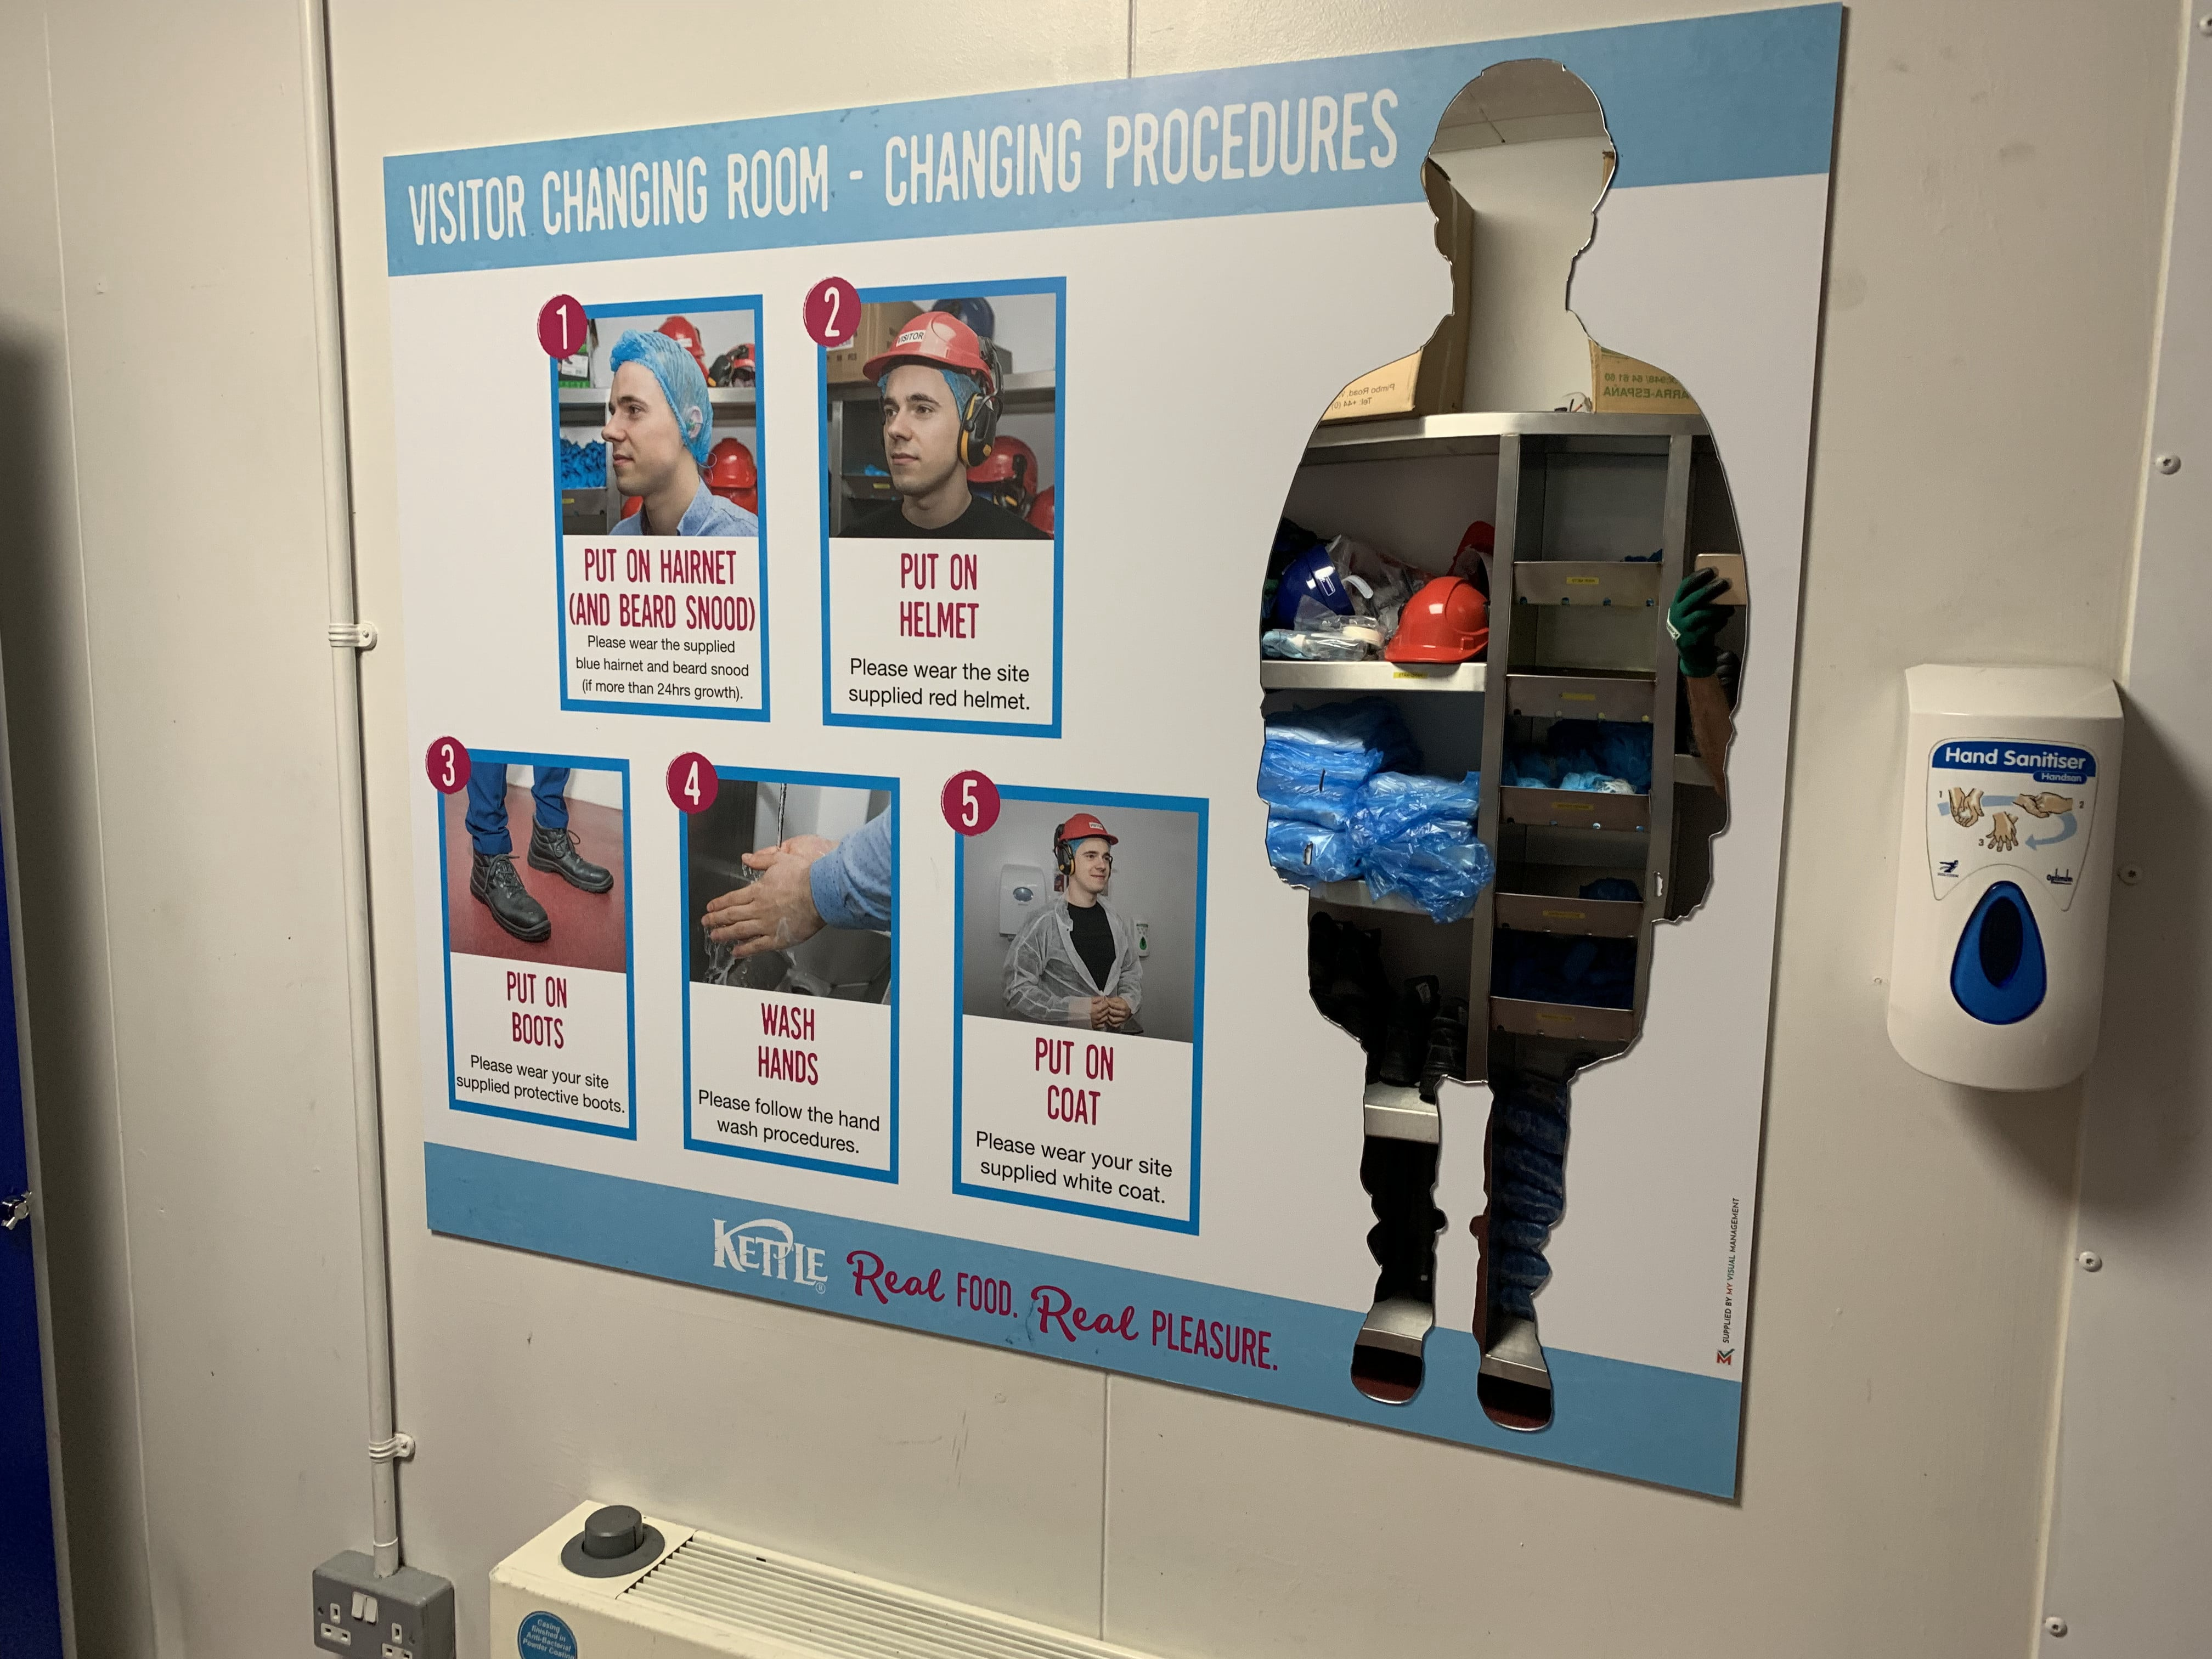 Changing Procedures board with mirror